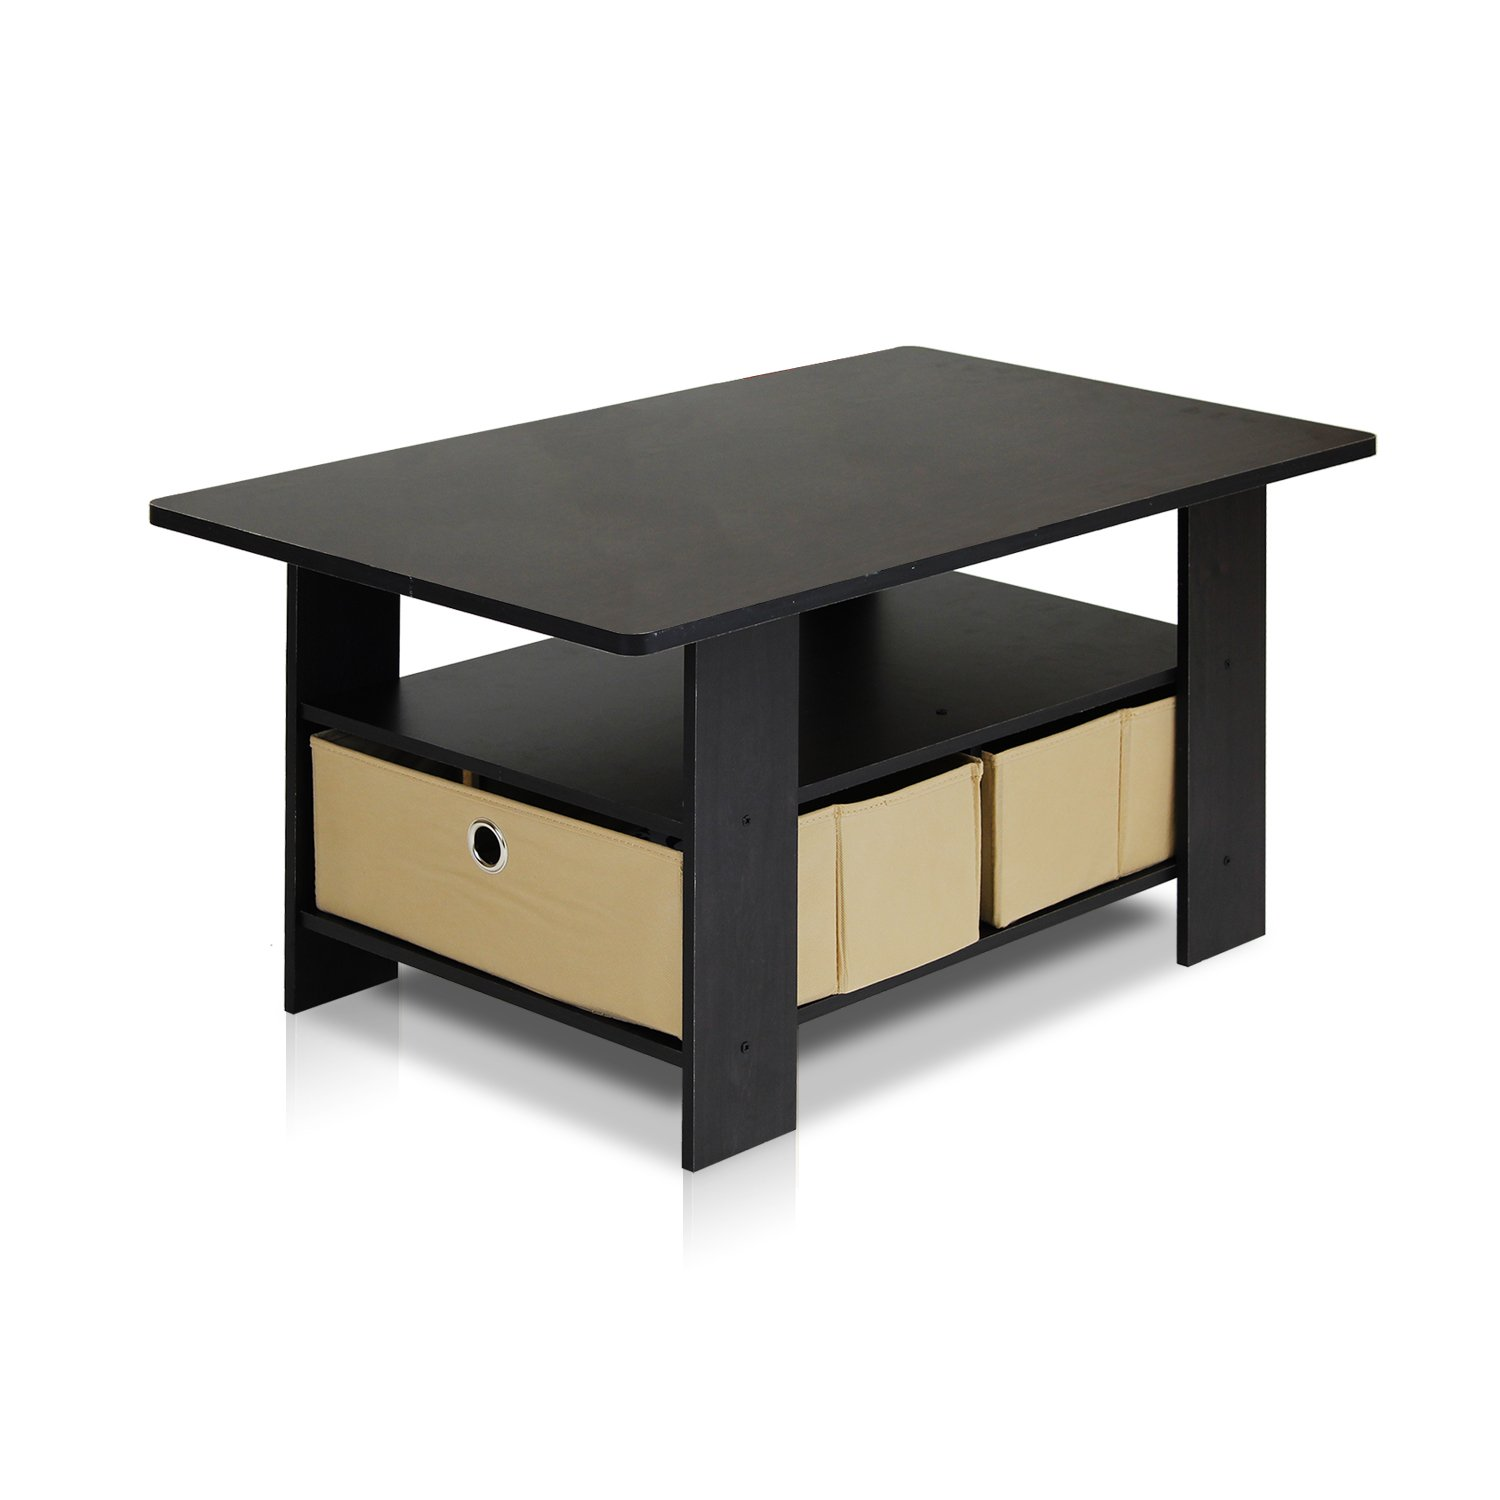 #887343 Small Coffee Table Living Room Furniture Dorm Desk Home Storage Shelf  with 1500x1500 px of Highly Rated Small Table Desk 15001500 picture/photo @ avoidforclosure.info